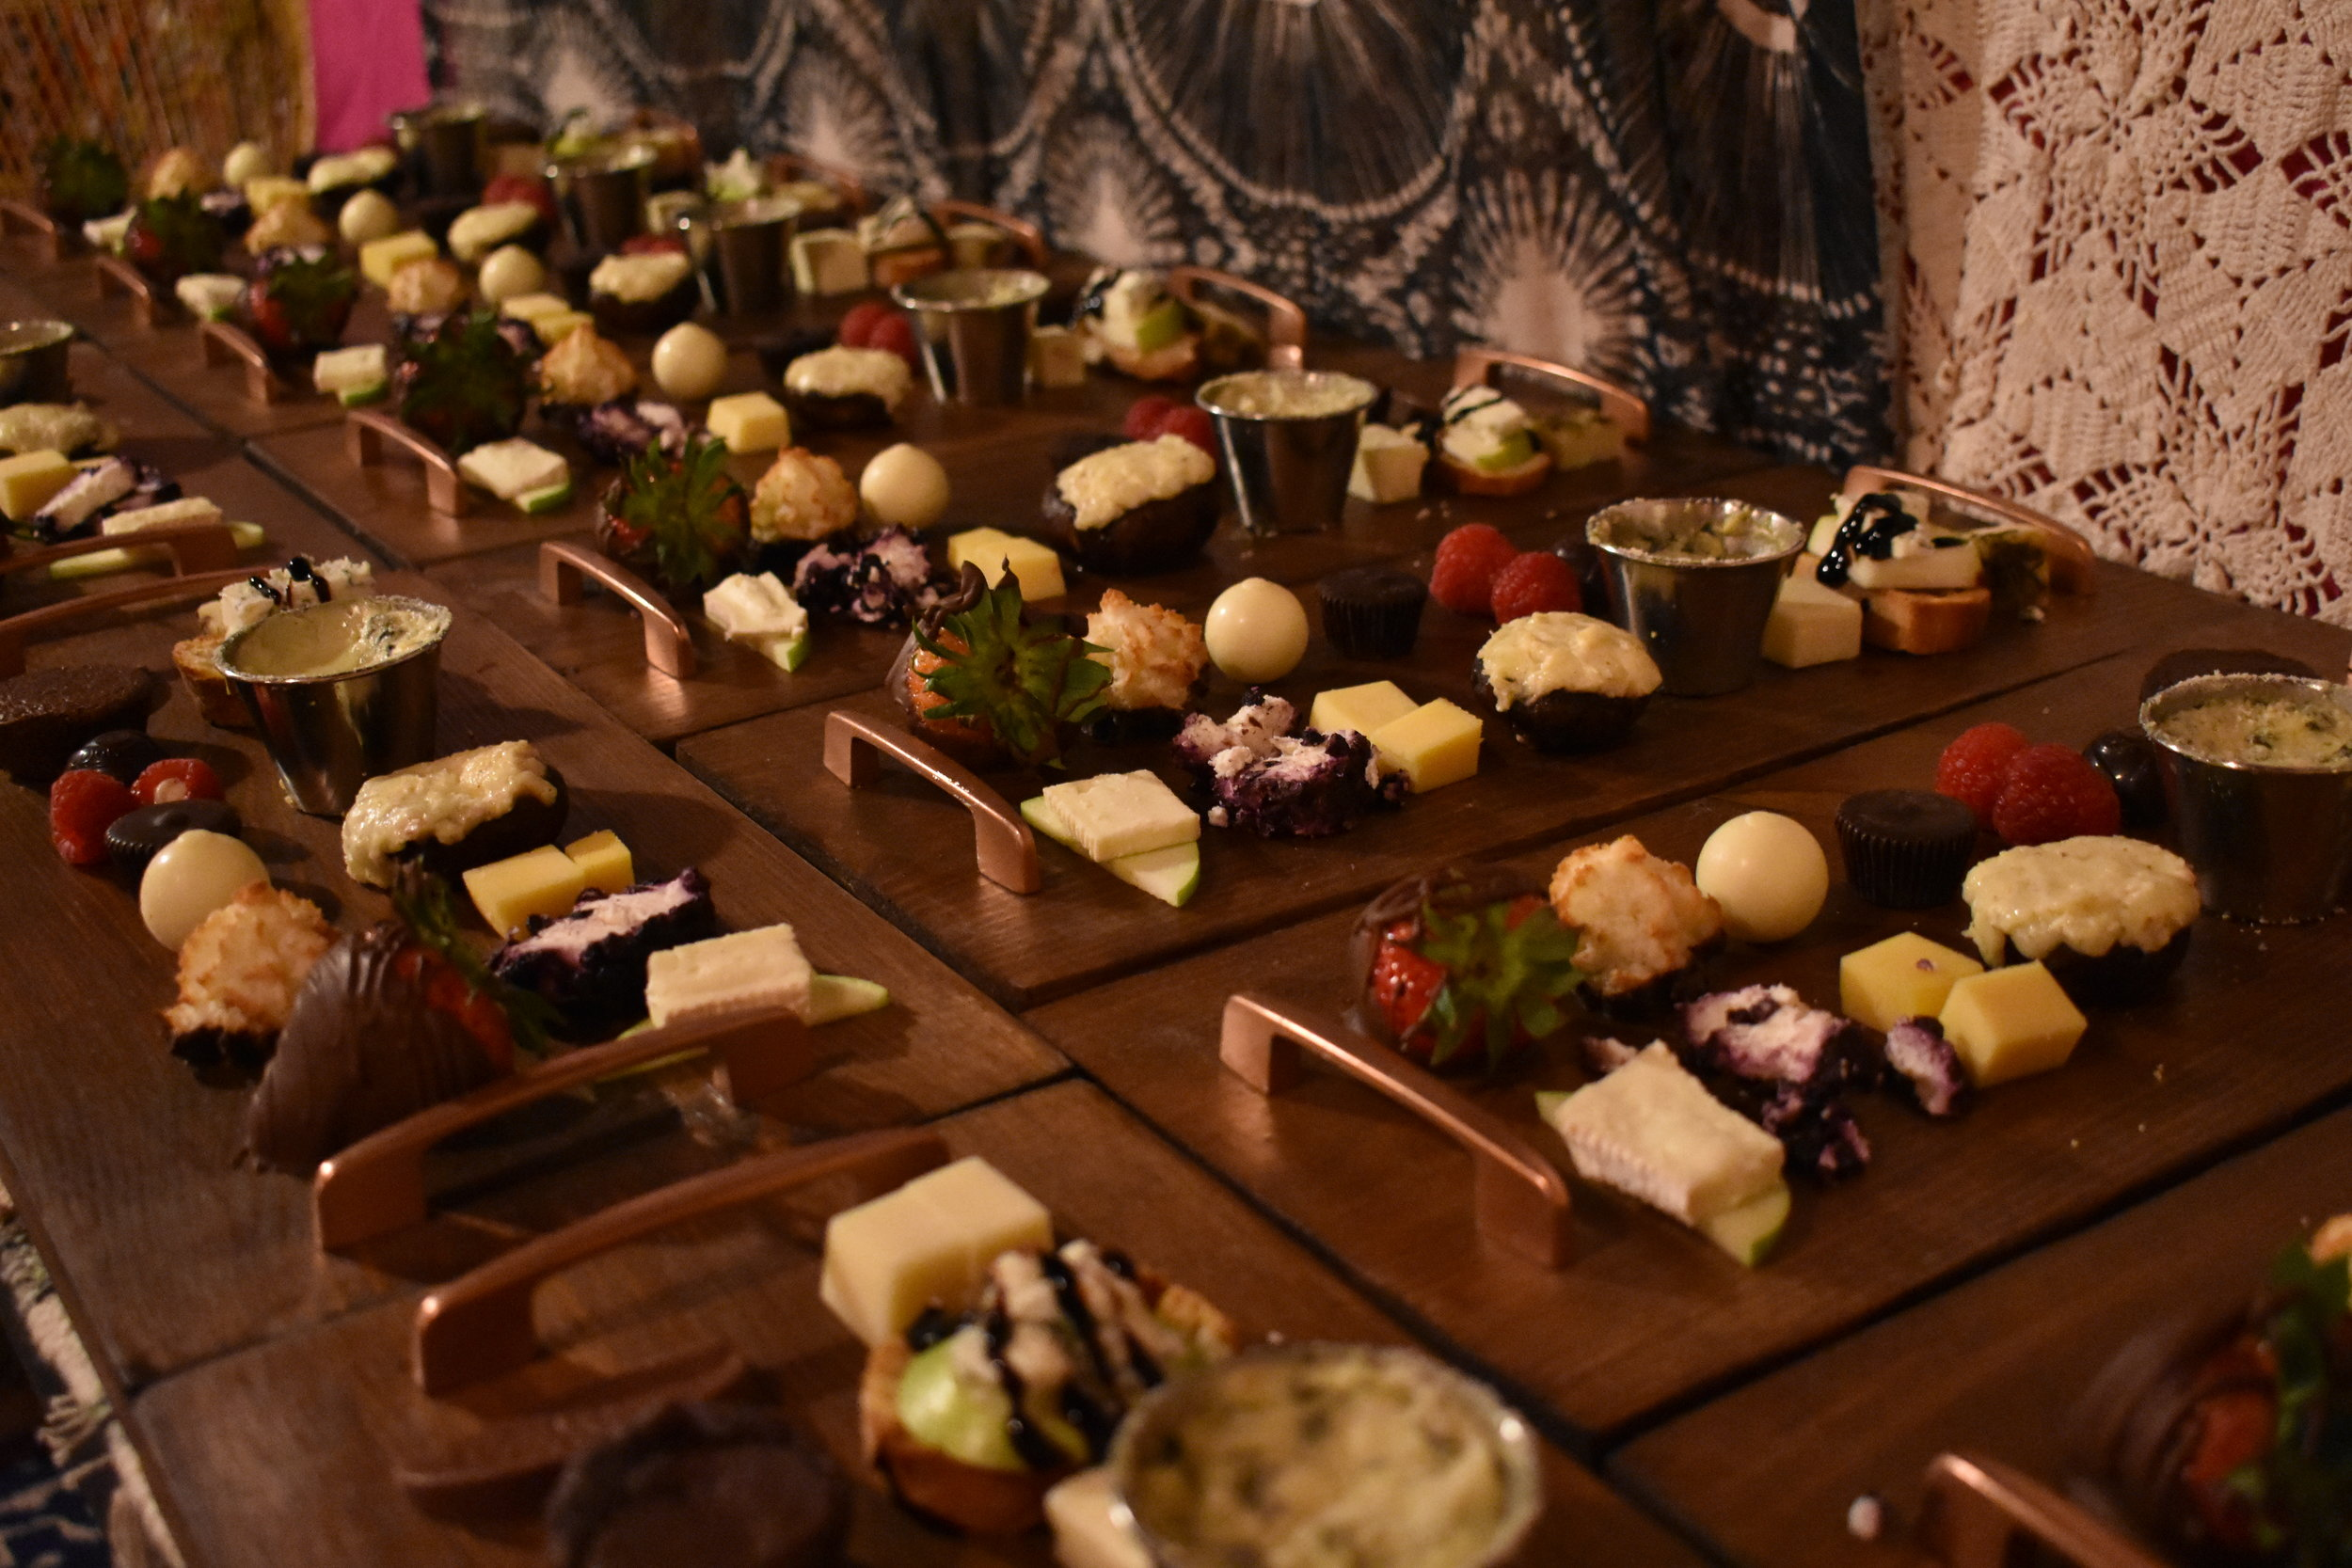 DIY Cheeseboards for a Wine & Cheese Pairing Party - Boho Bridal Shower